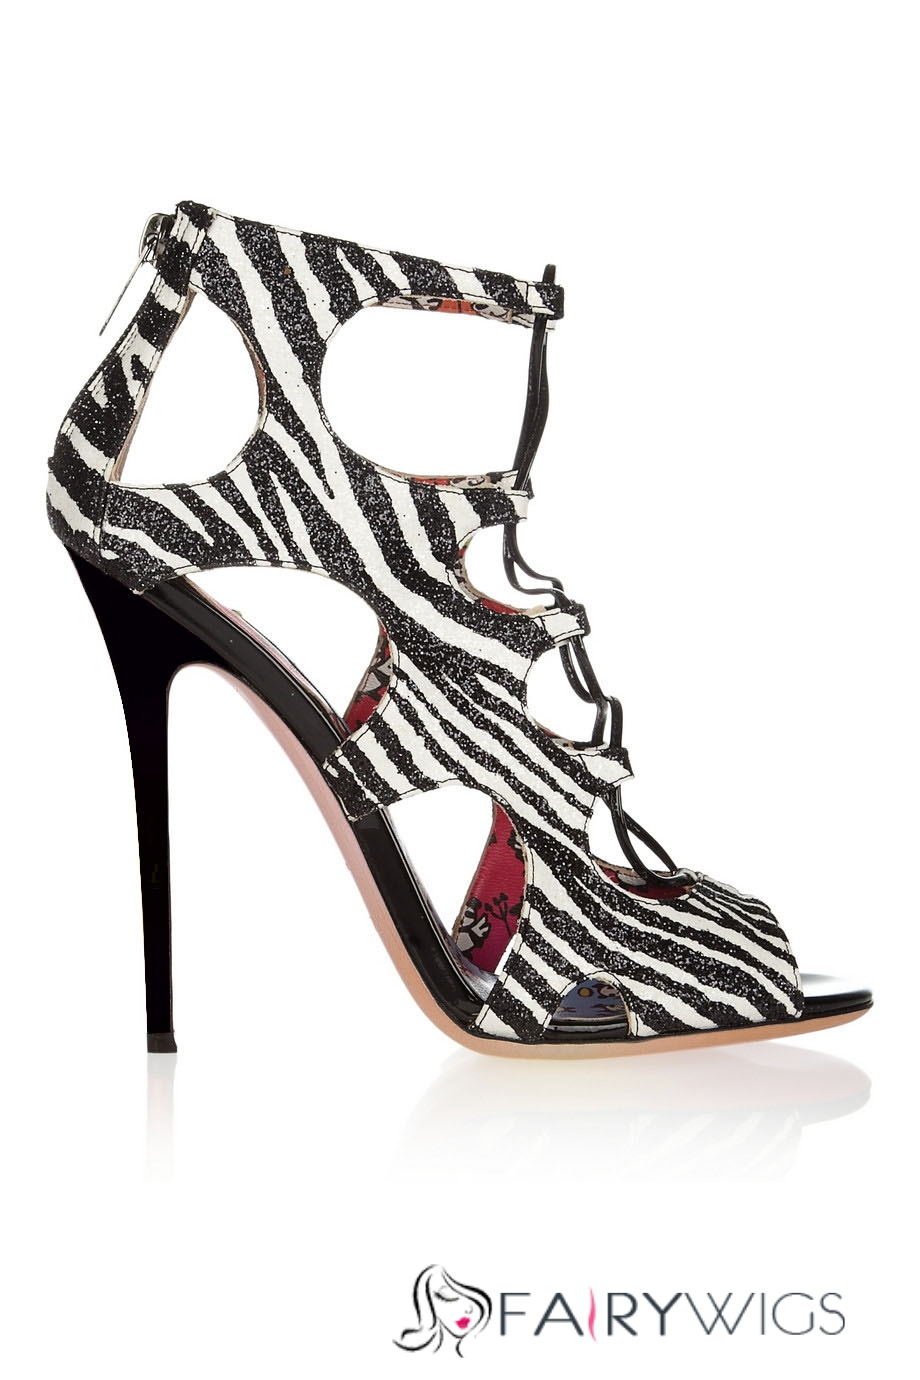 Cute Zebra Print Frenulum Peep Toe Heels Shoes Fairywigs Com